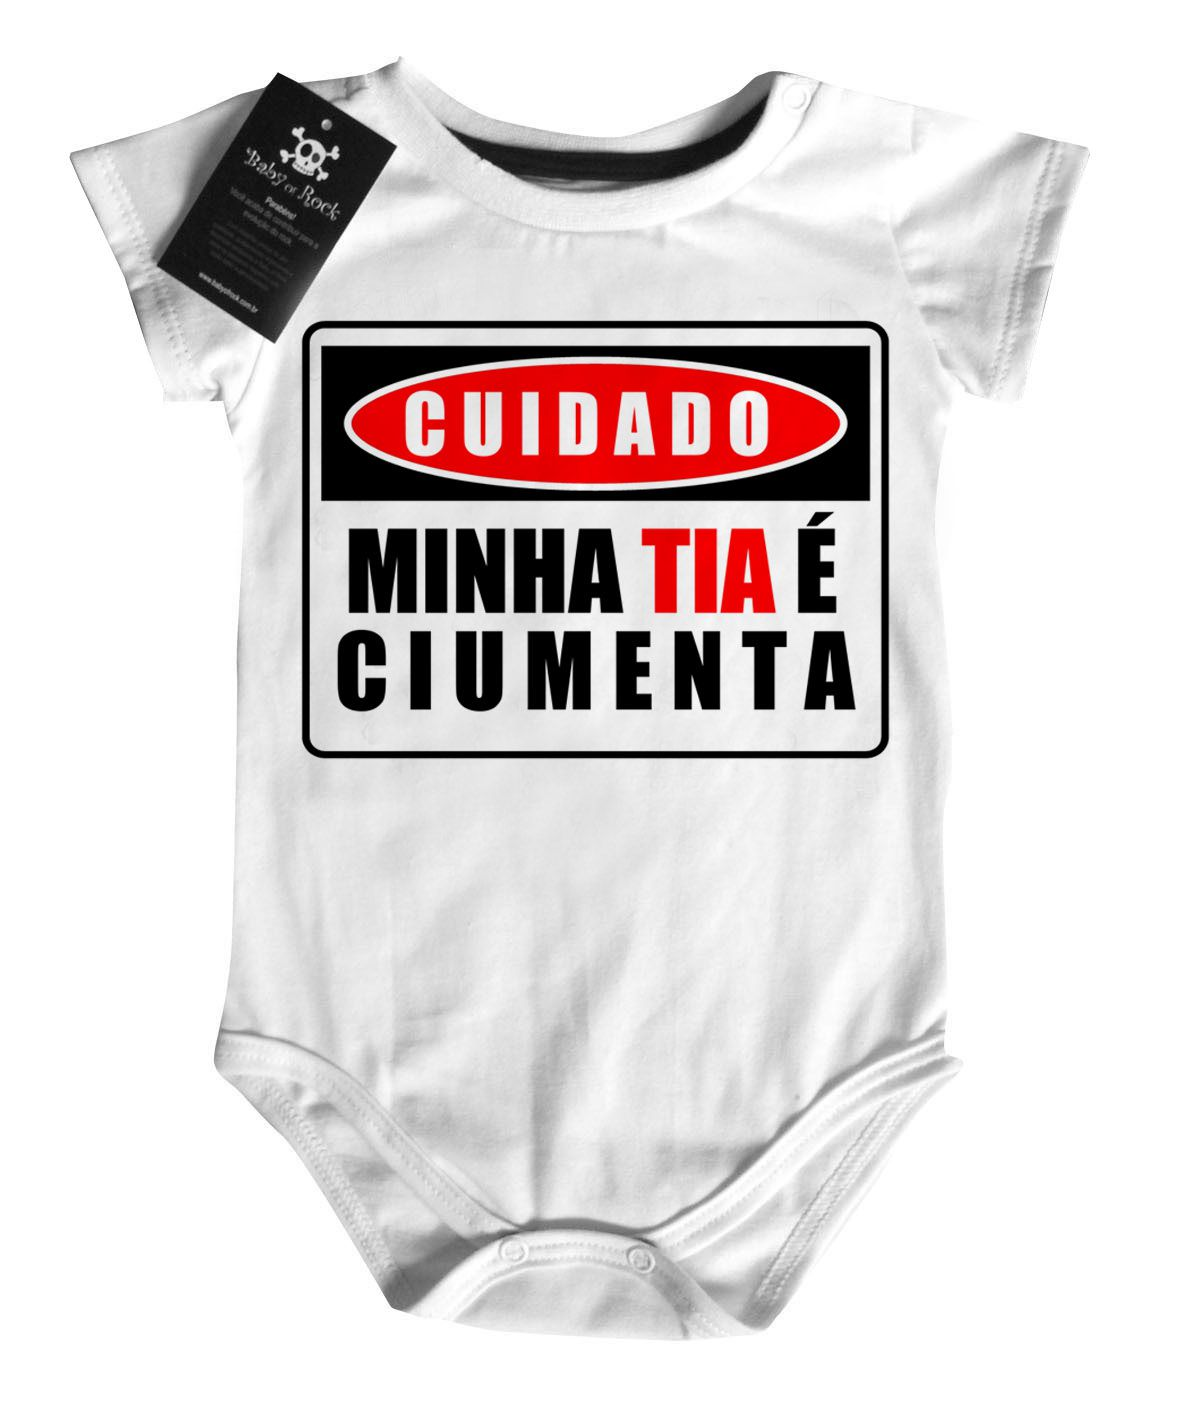 Body Titia Ciumenta - White  - Baby Monster S/A